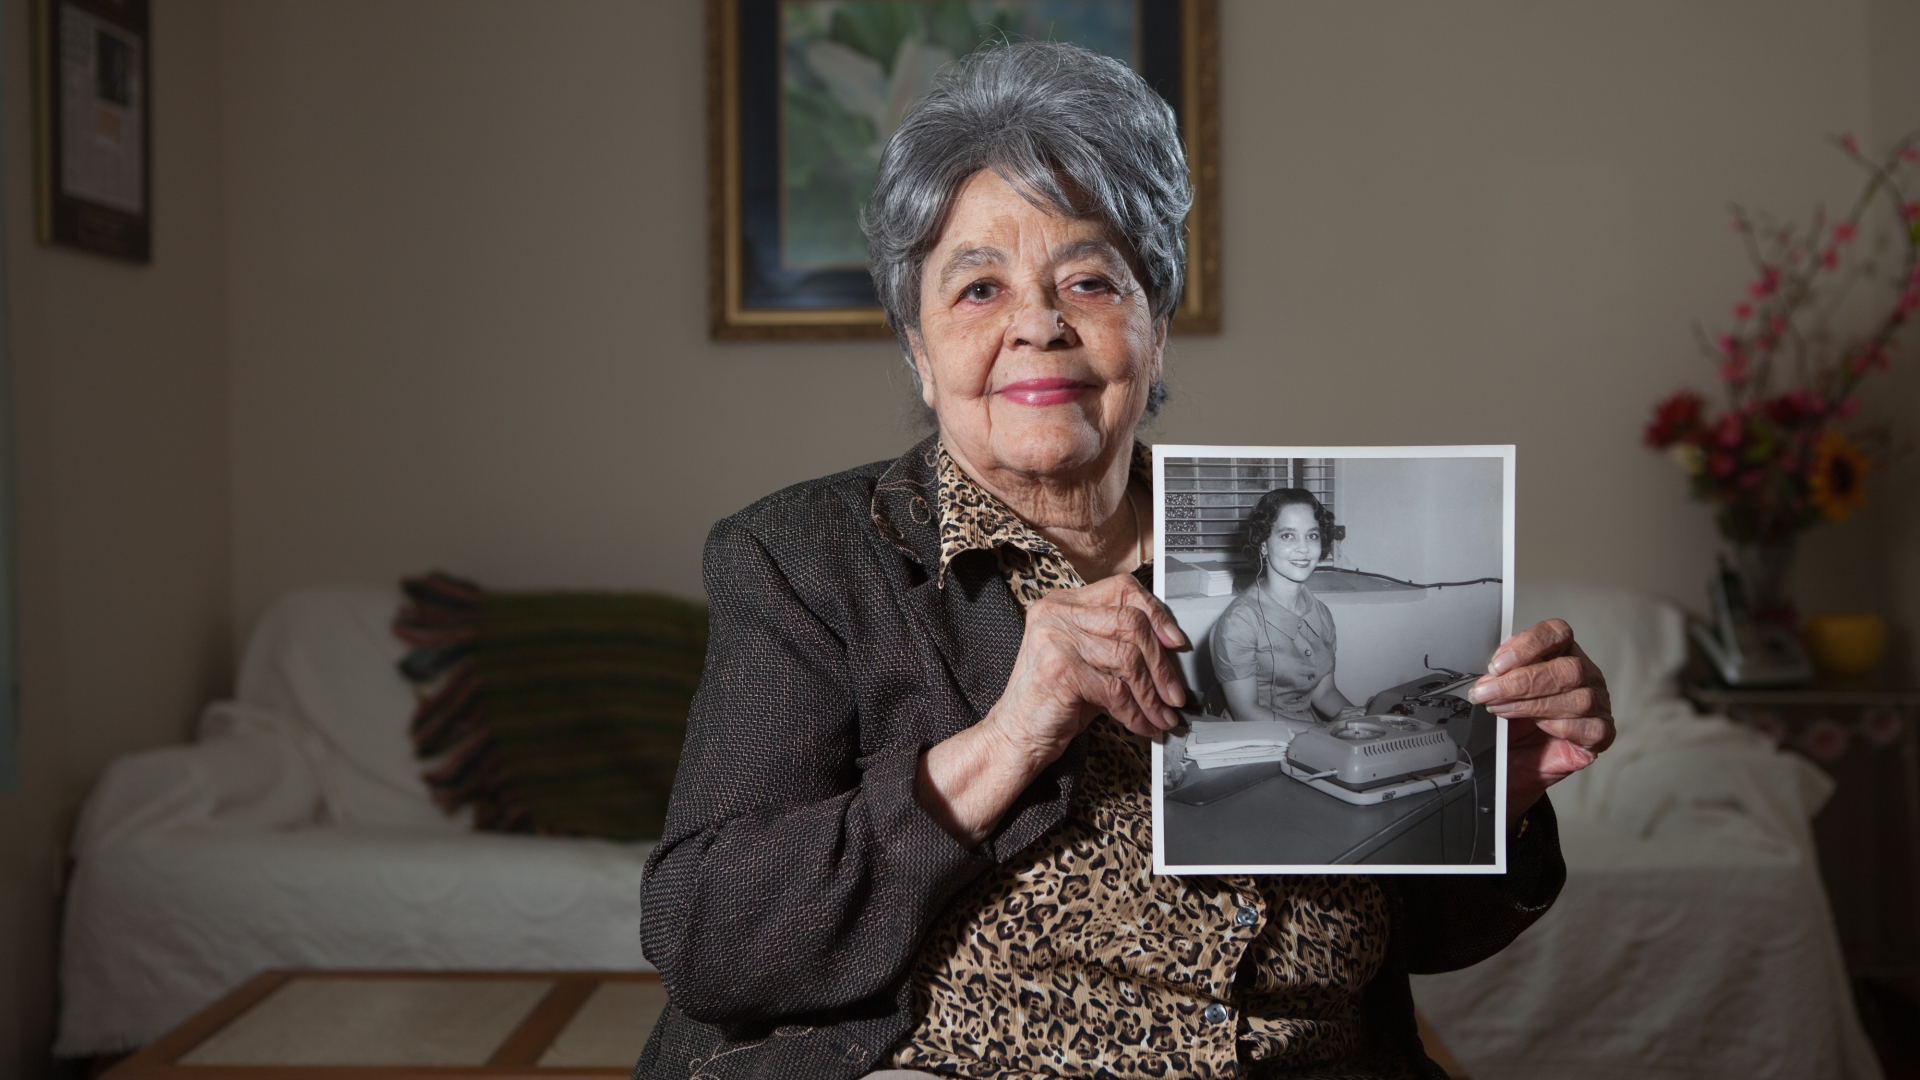 Maude Ballou, in 2015, with a photo of herself taken when she served as Martin Luther King, Jr.'s secretary from 1955 to 1960. (Credit: The Washington Post/Getty Images)